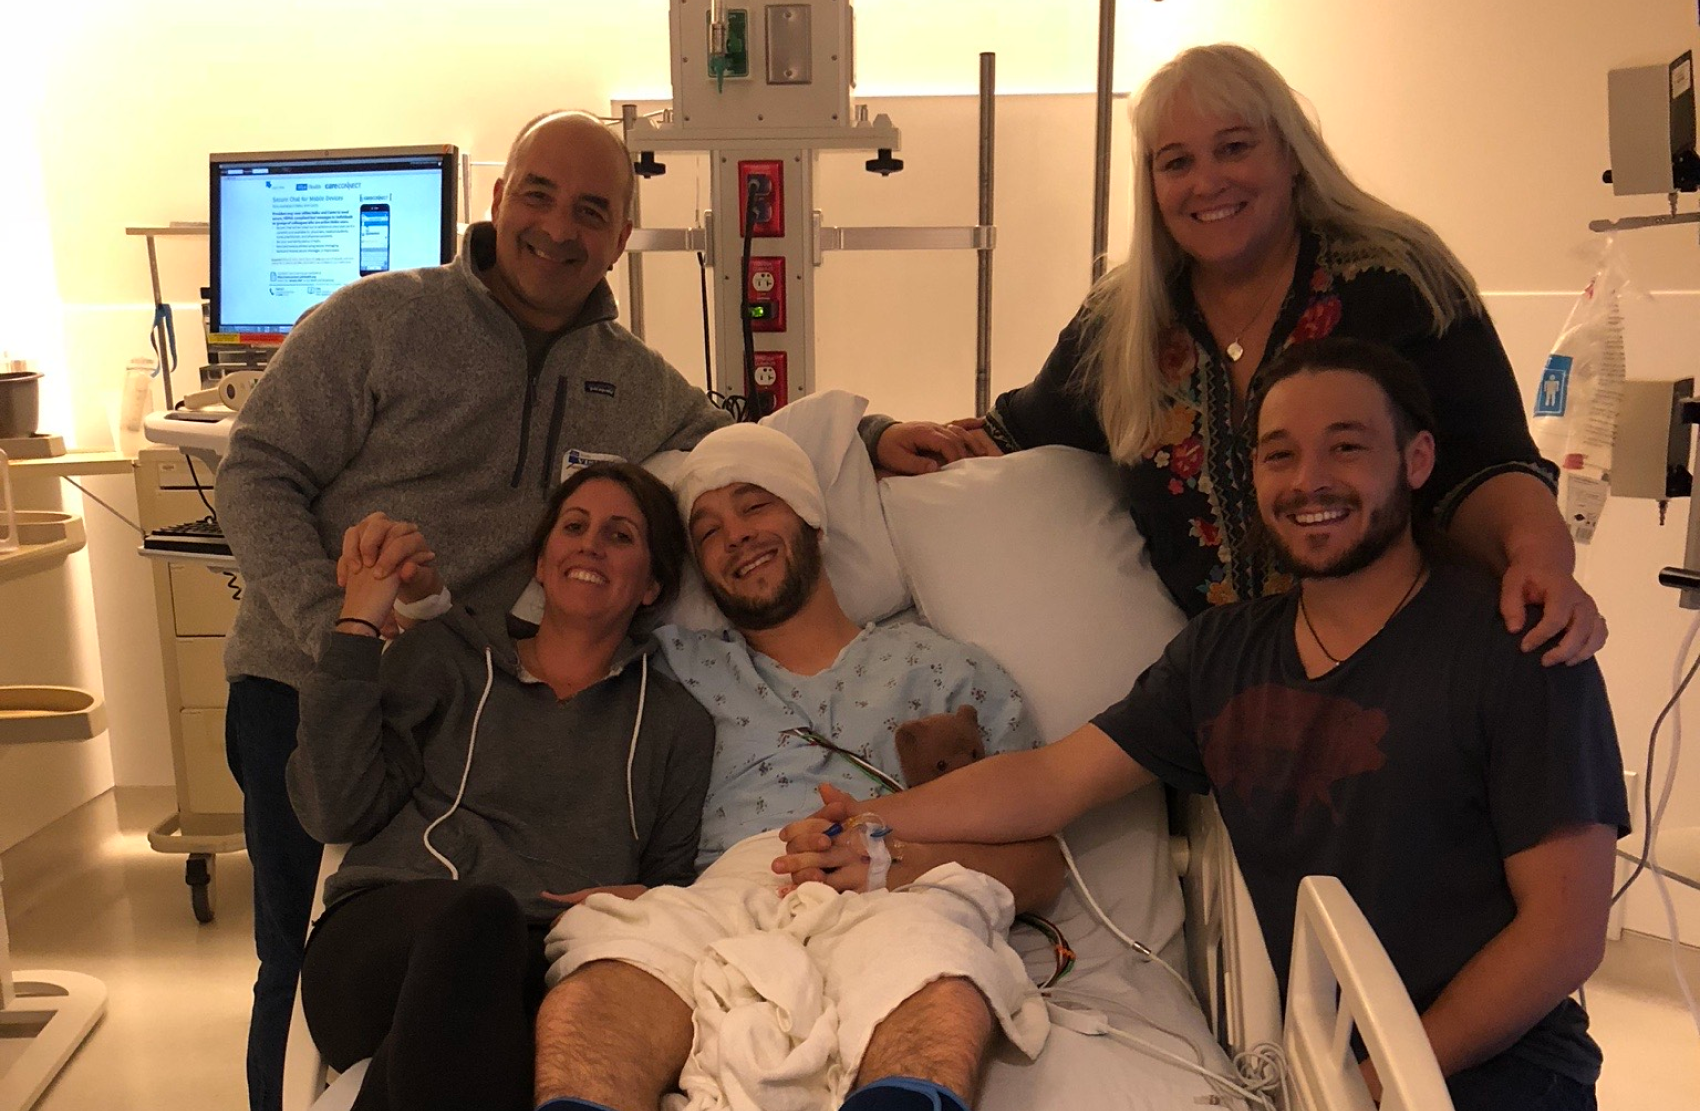 Jared Muscat and his family after brain surgery